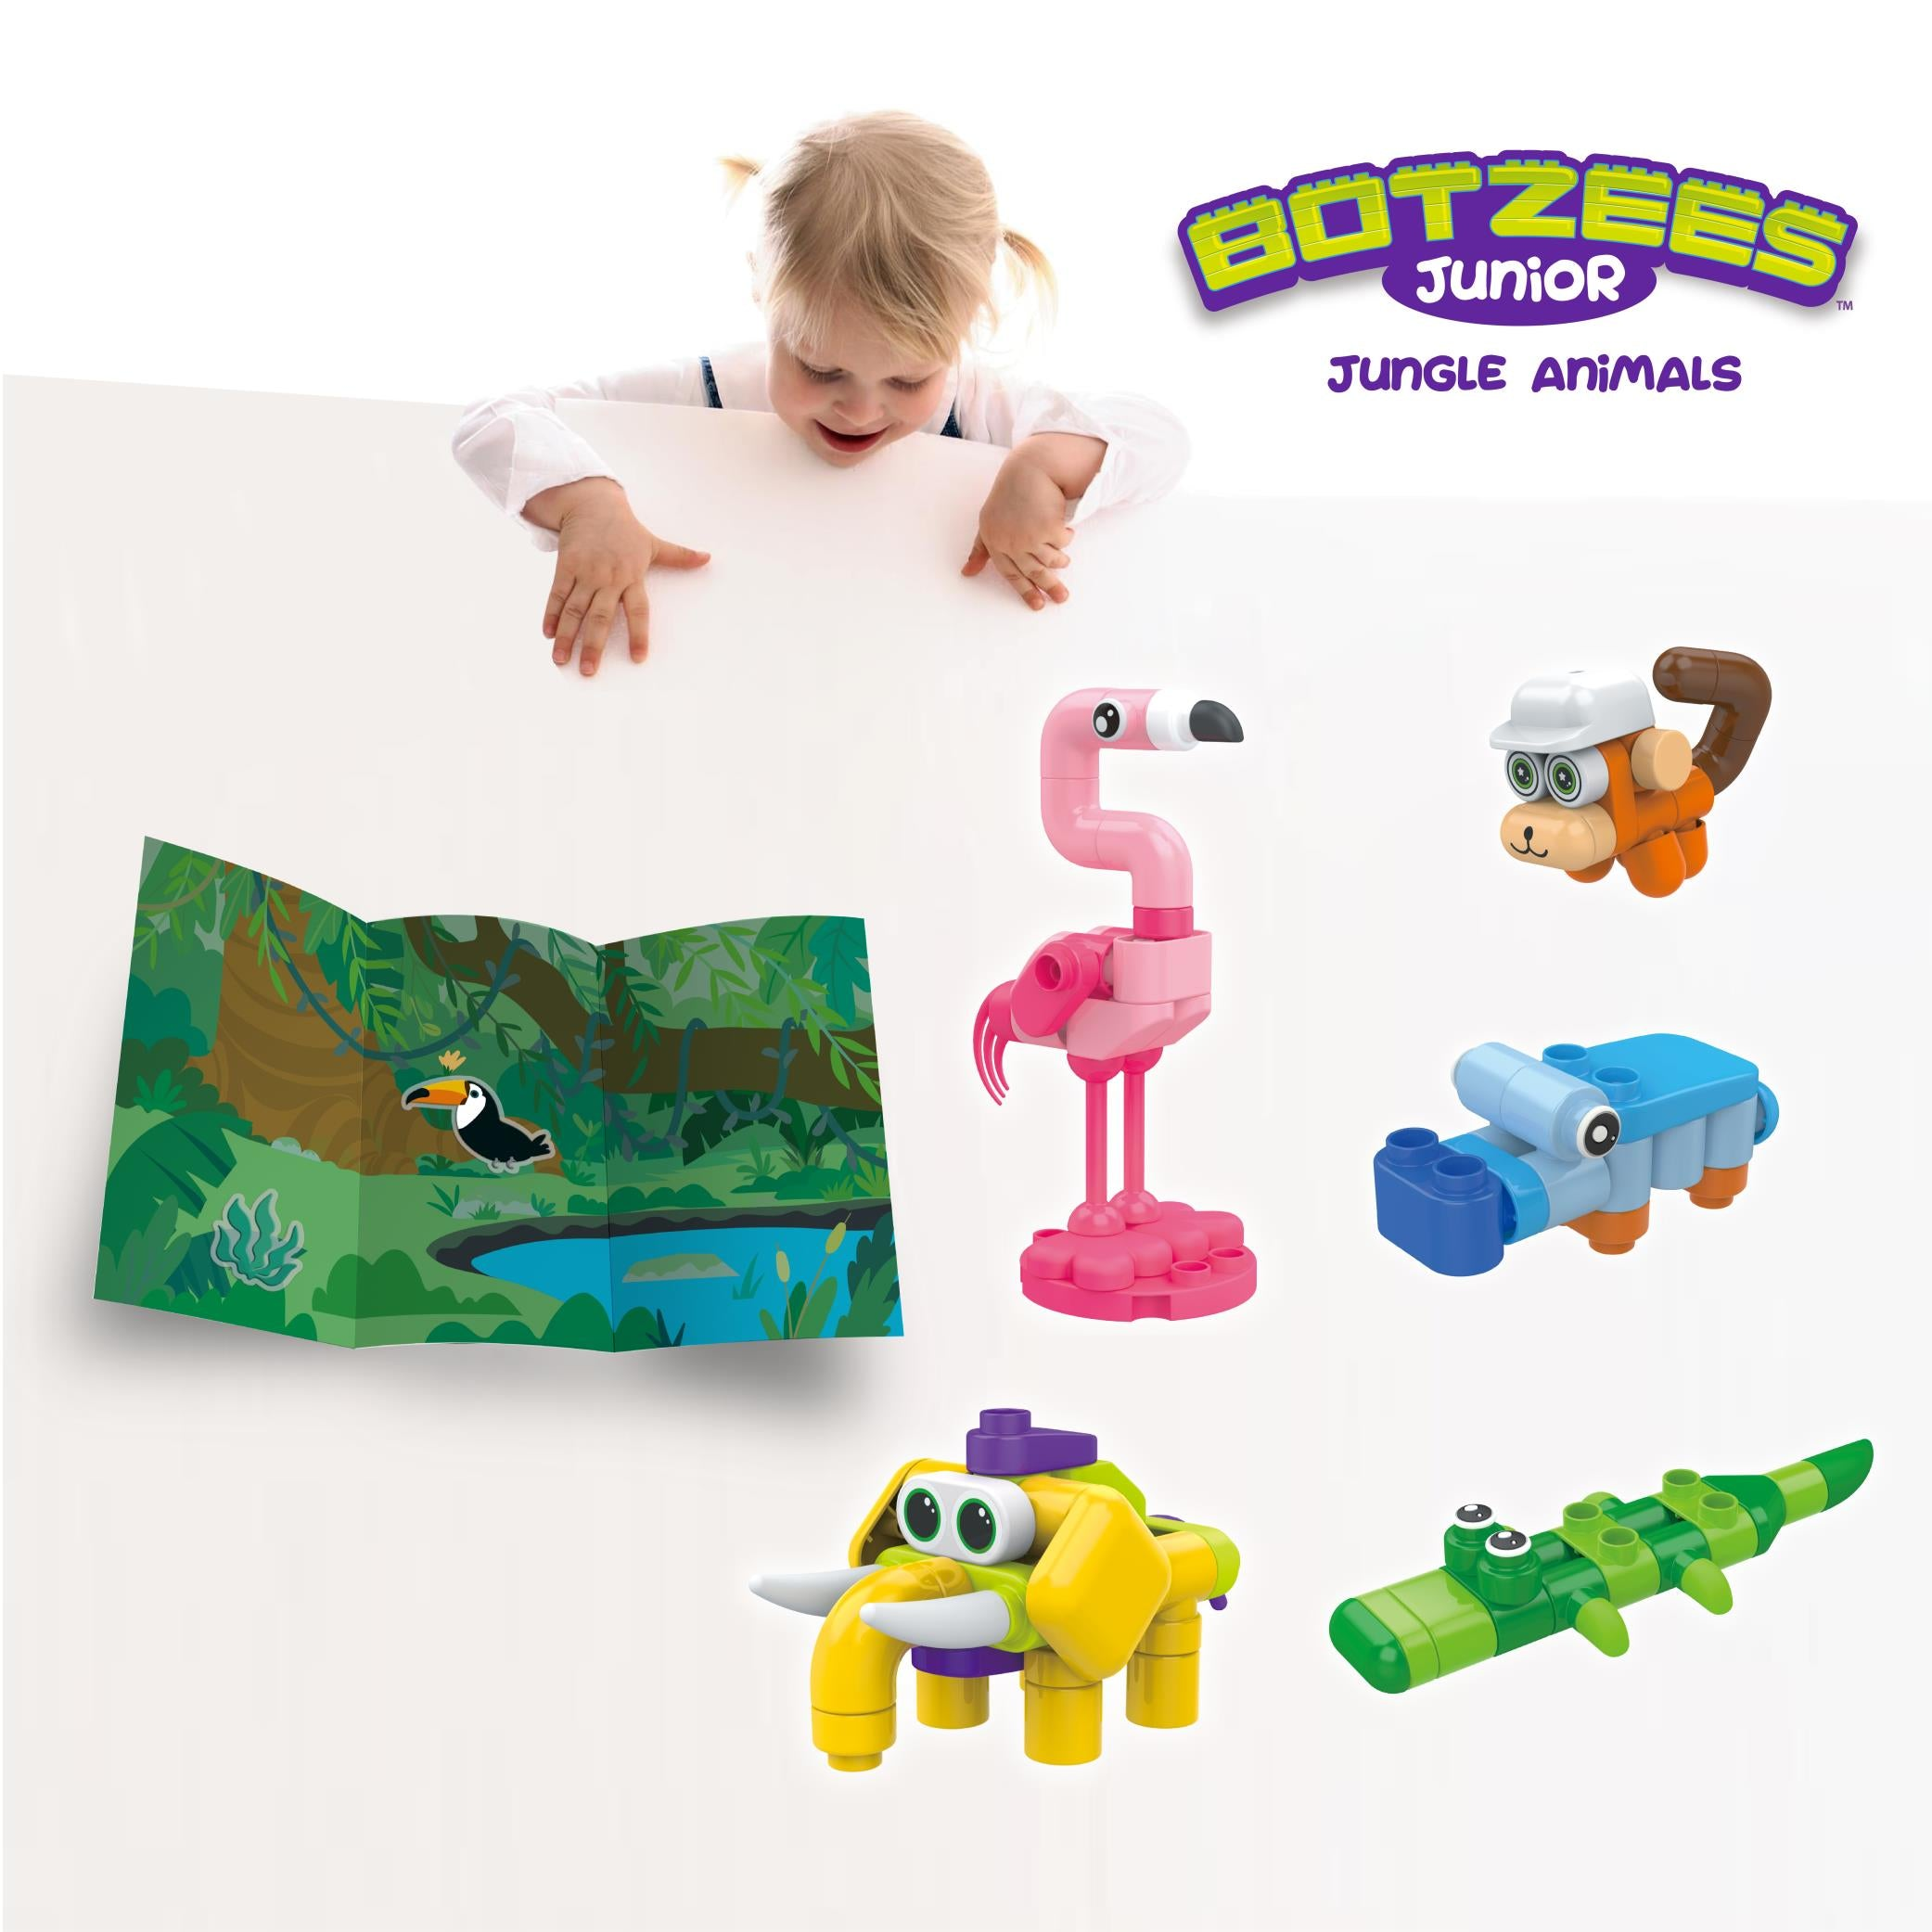 Botzees Junior - Jungle Animals Set